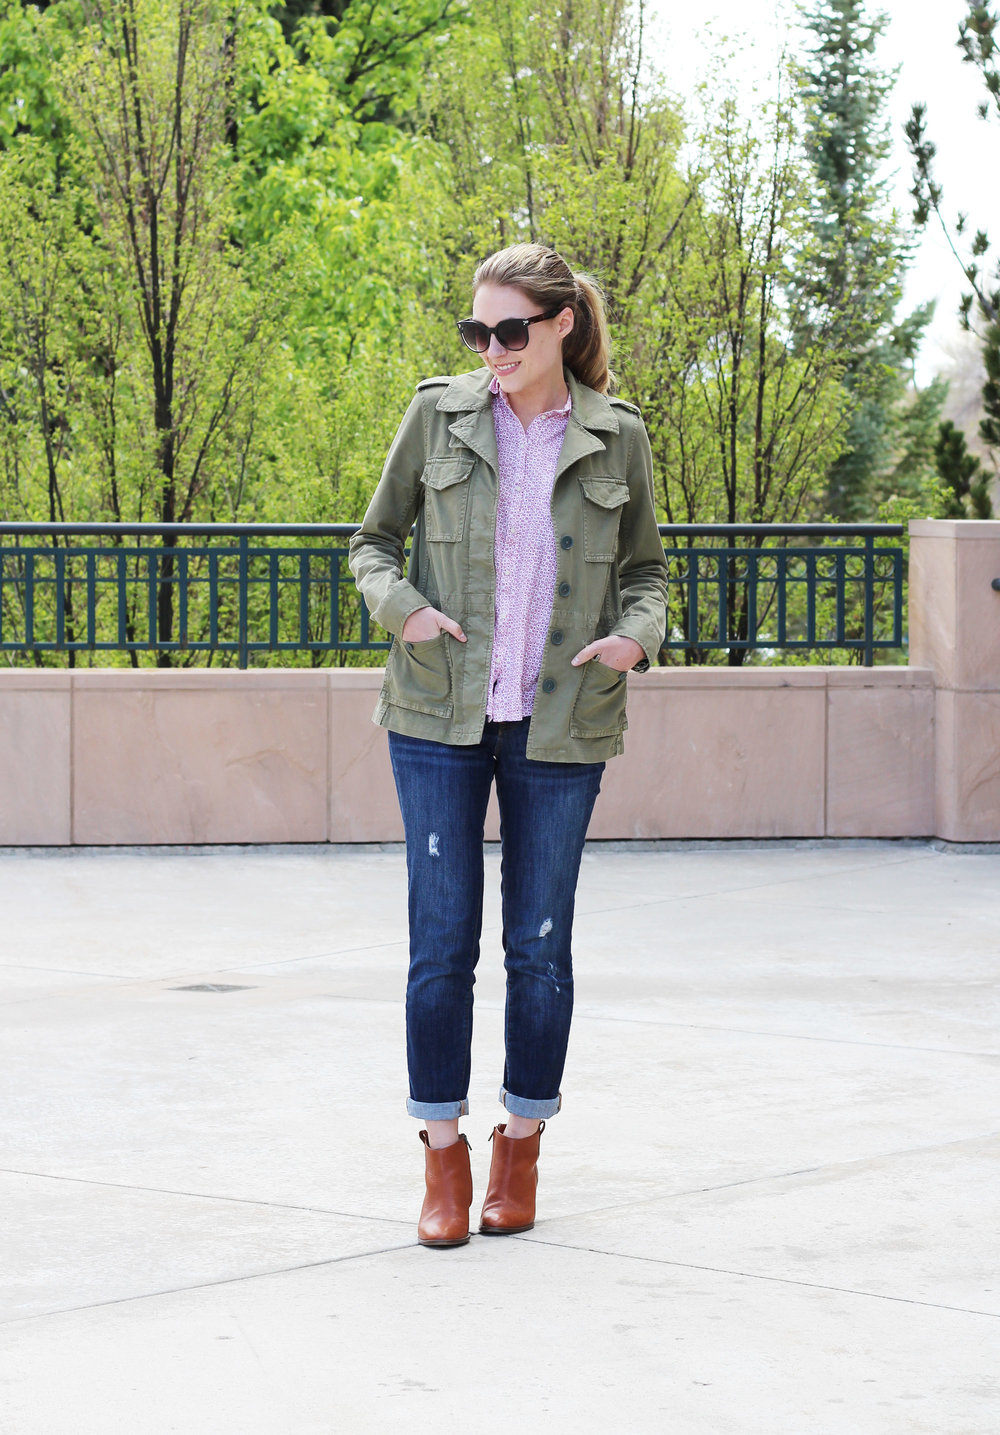 Boyfriend jeans outfit with army green utility jacket and ankle boots — Cotton Cashmere Cat Hair